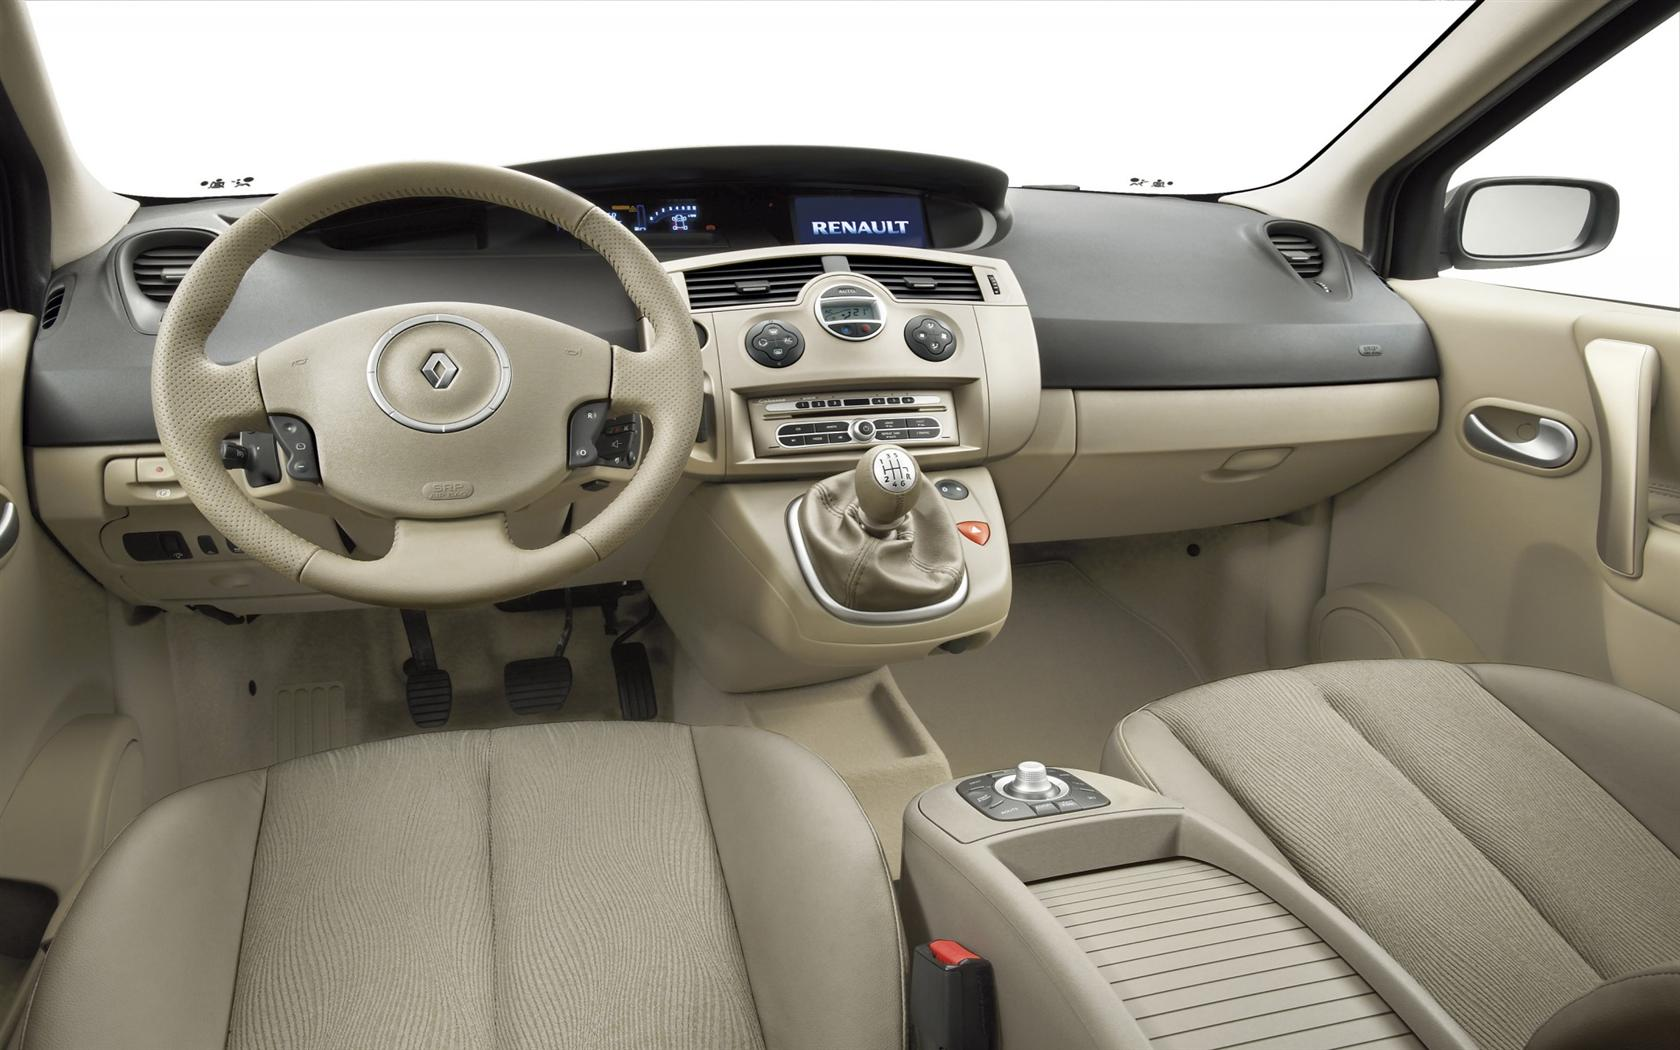 2009 Renault Sc 233 Nic Image Https Www Conceptcarz Com Images Renault Renault Scenic Interior